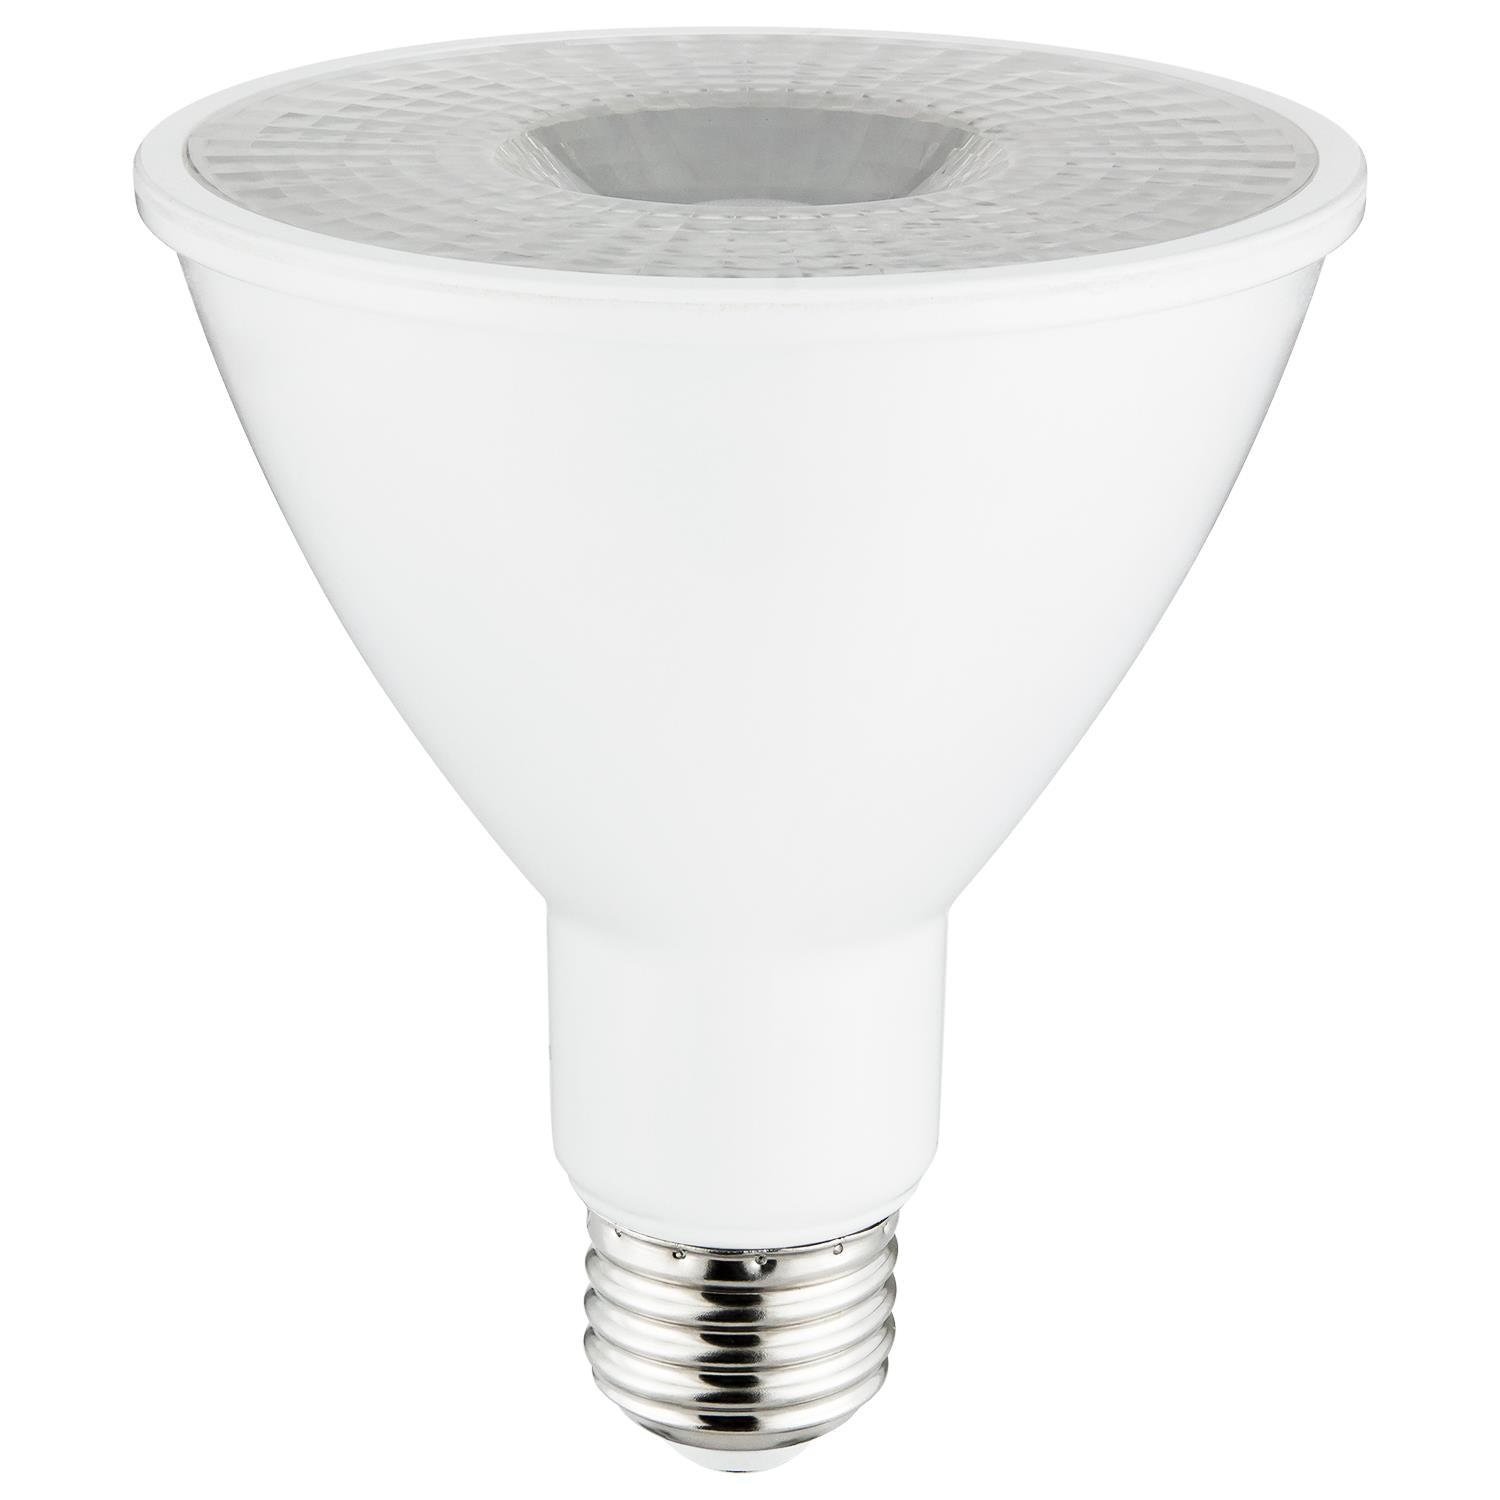 SUNLITE 10w LED Par30 Long Neck Flood 35 E26 Medium Base Warm White Light Bulb